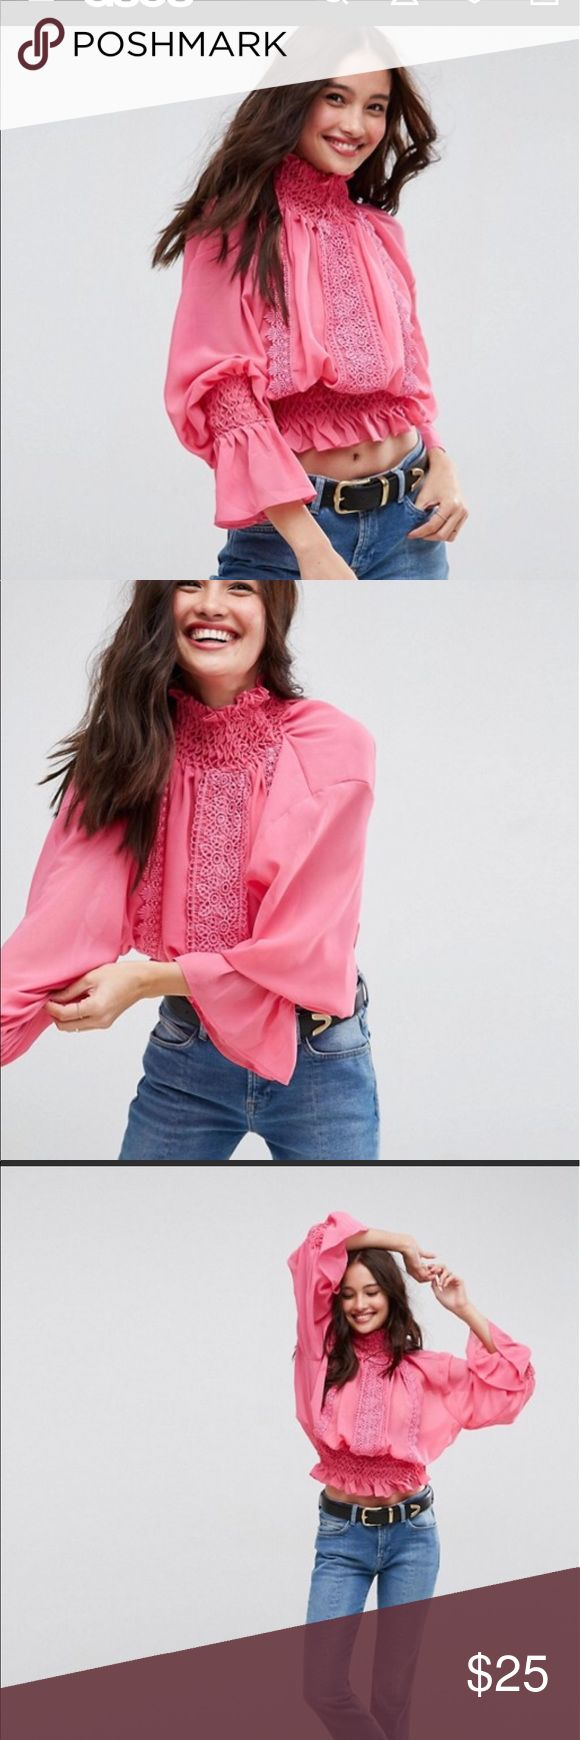 ASOS Hand smocked blouse with lace detail Brand new with tags. Hot pink. Sheer but can't see a nude bra underneath it. US size 2 - sold out online ASOS Tops Blouses